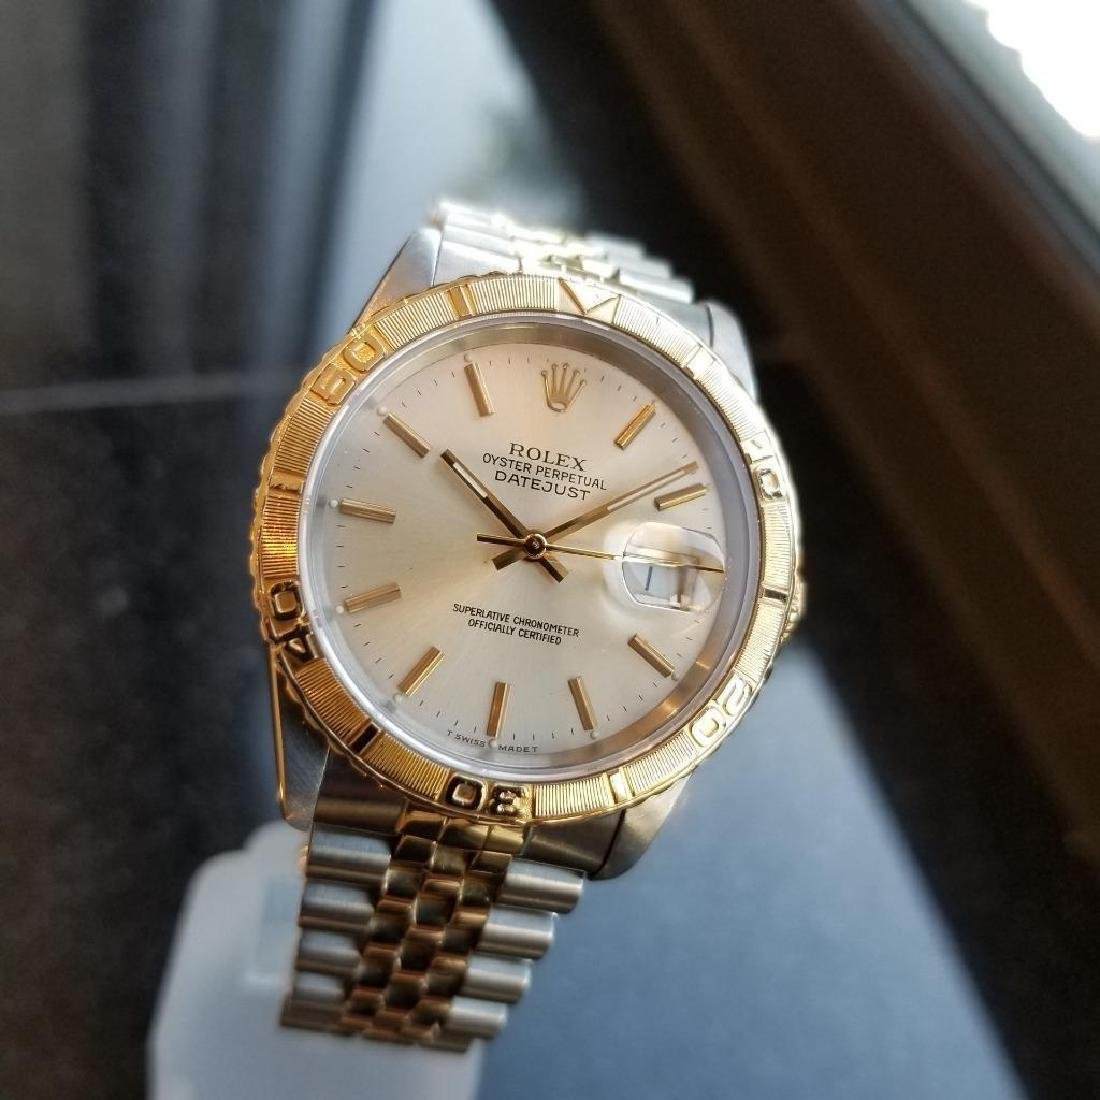 Rolex 1990 Oyster 162633 Automatic Datejust Men's Gold - 4